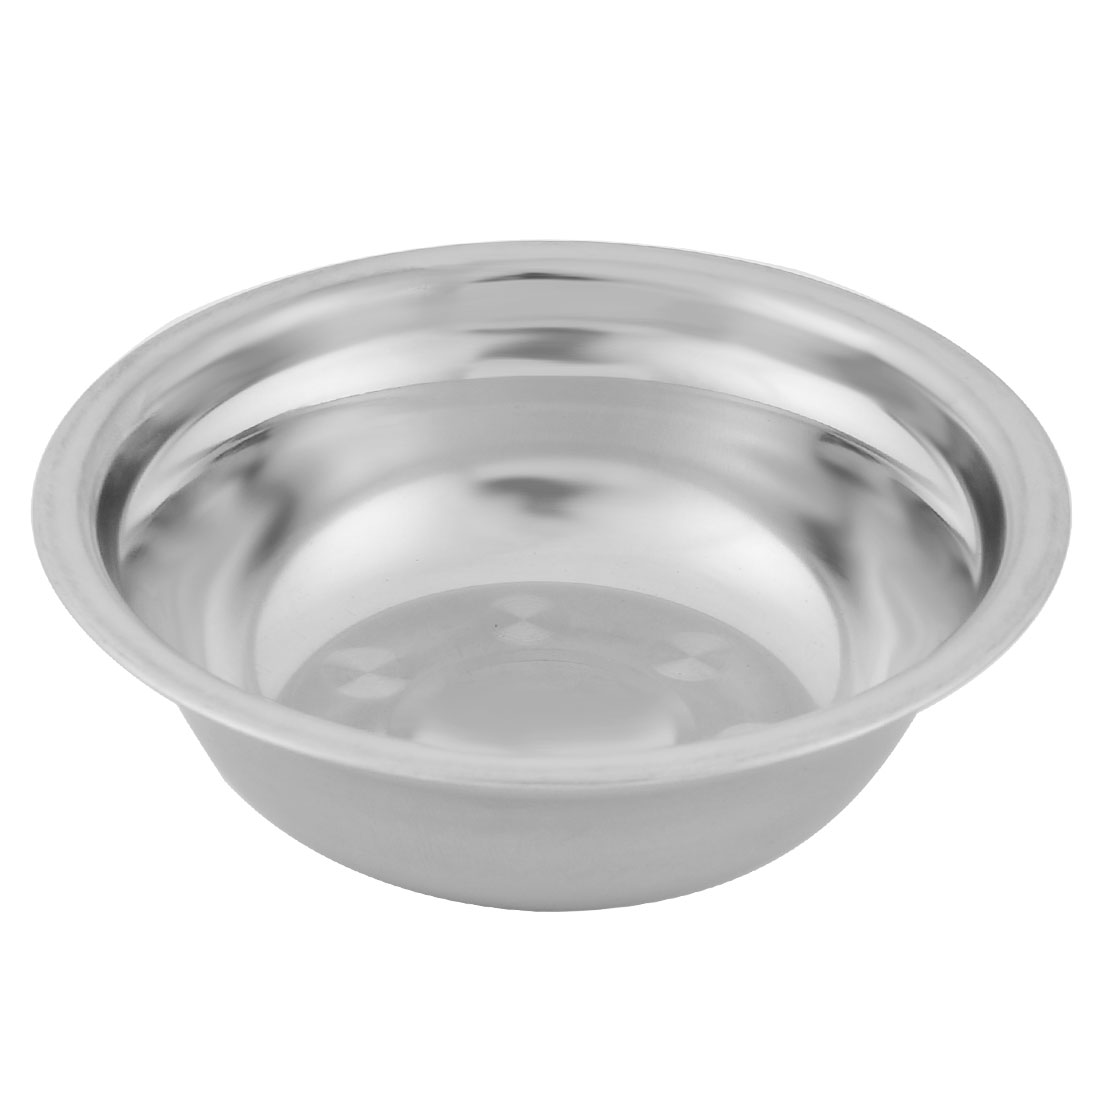 Household Kitchen Stainless Steel Fruit Soup Rice Dinner Bowl 15cm Diameter Silver Tone